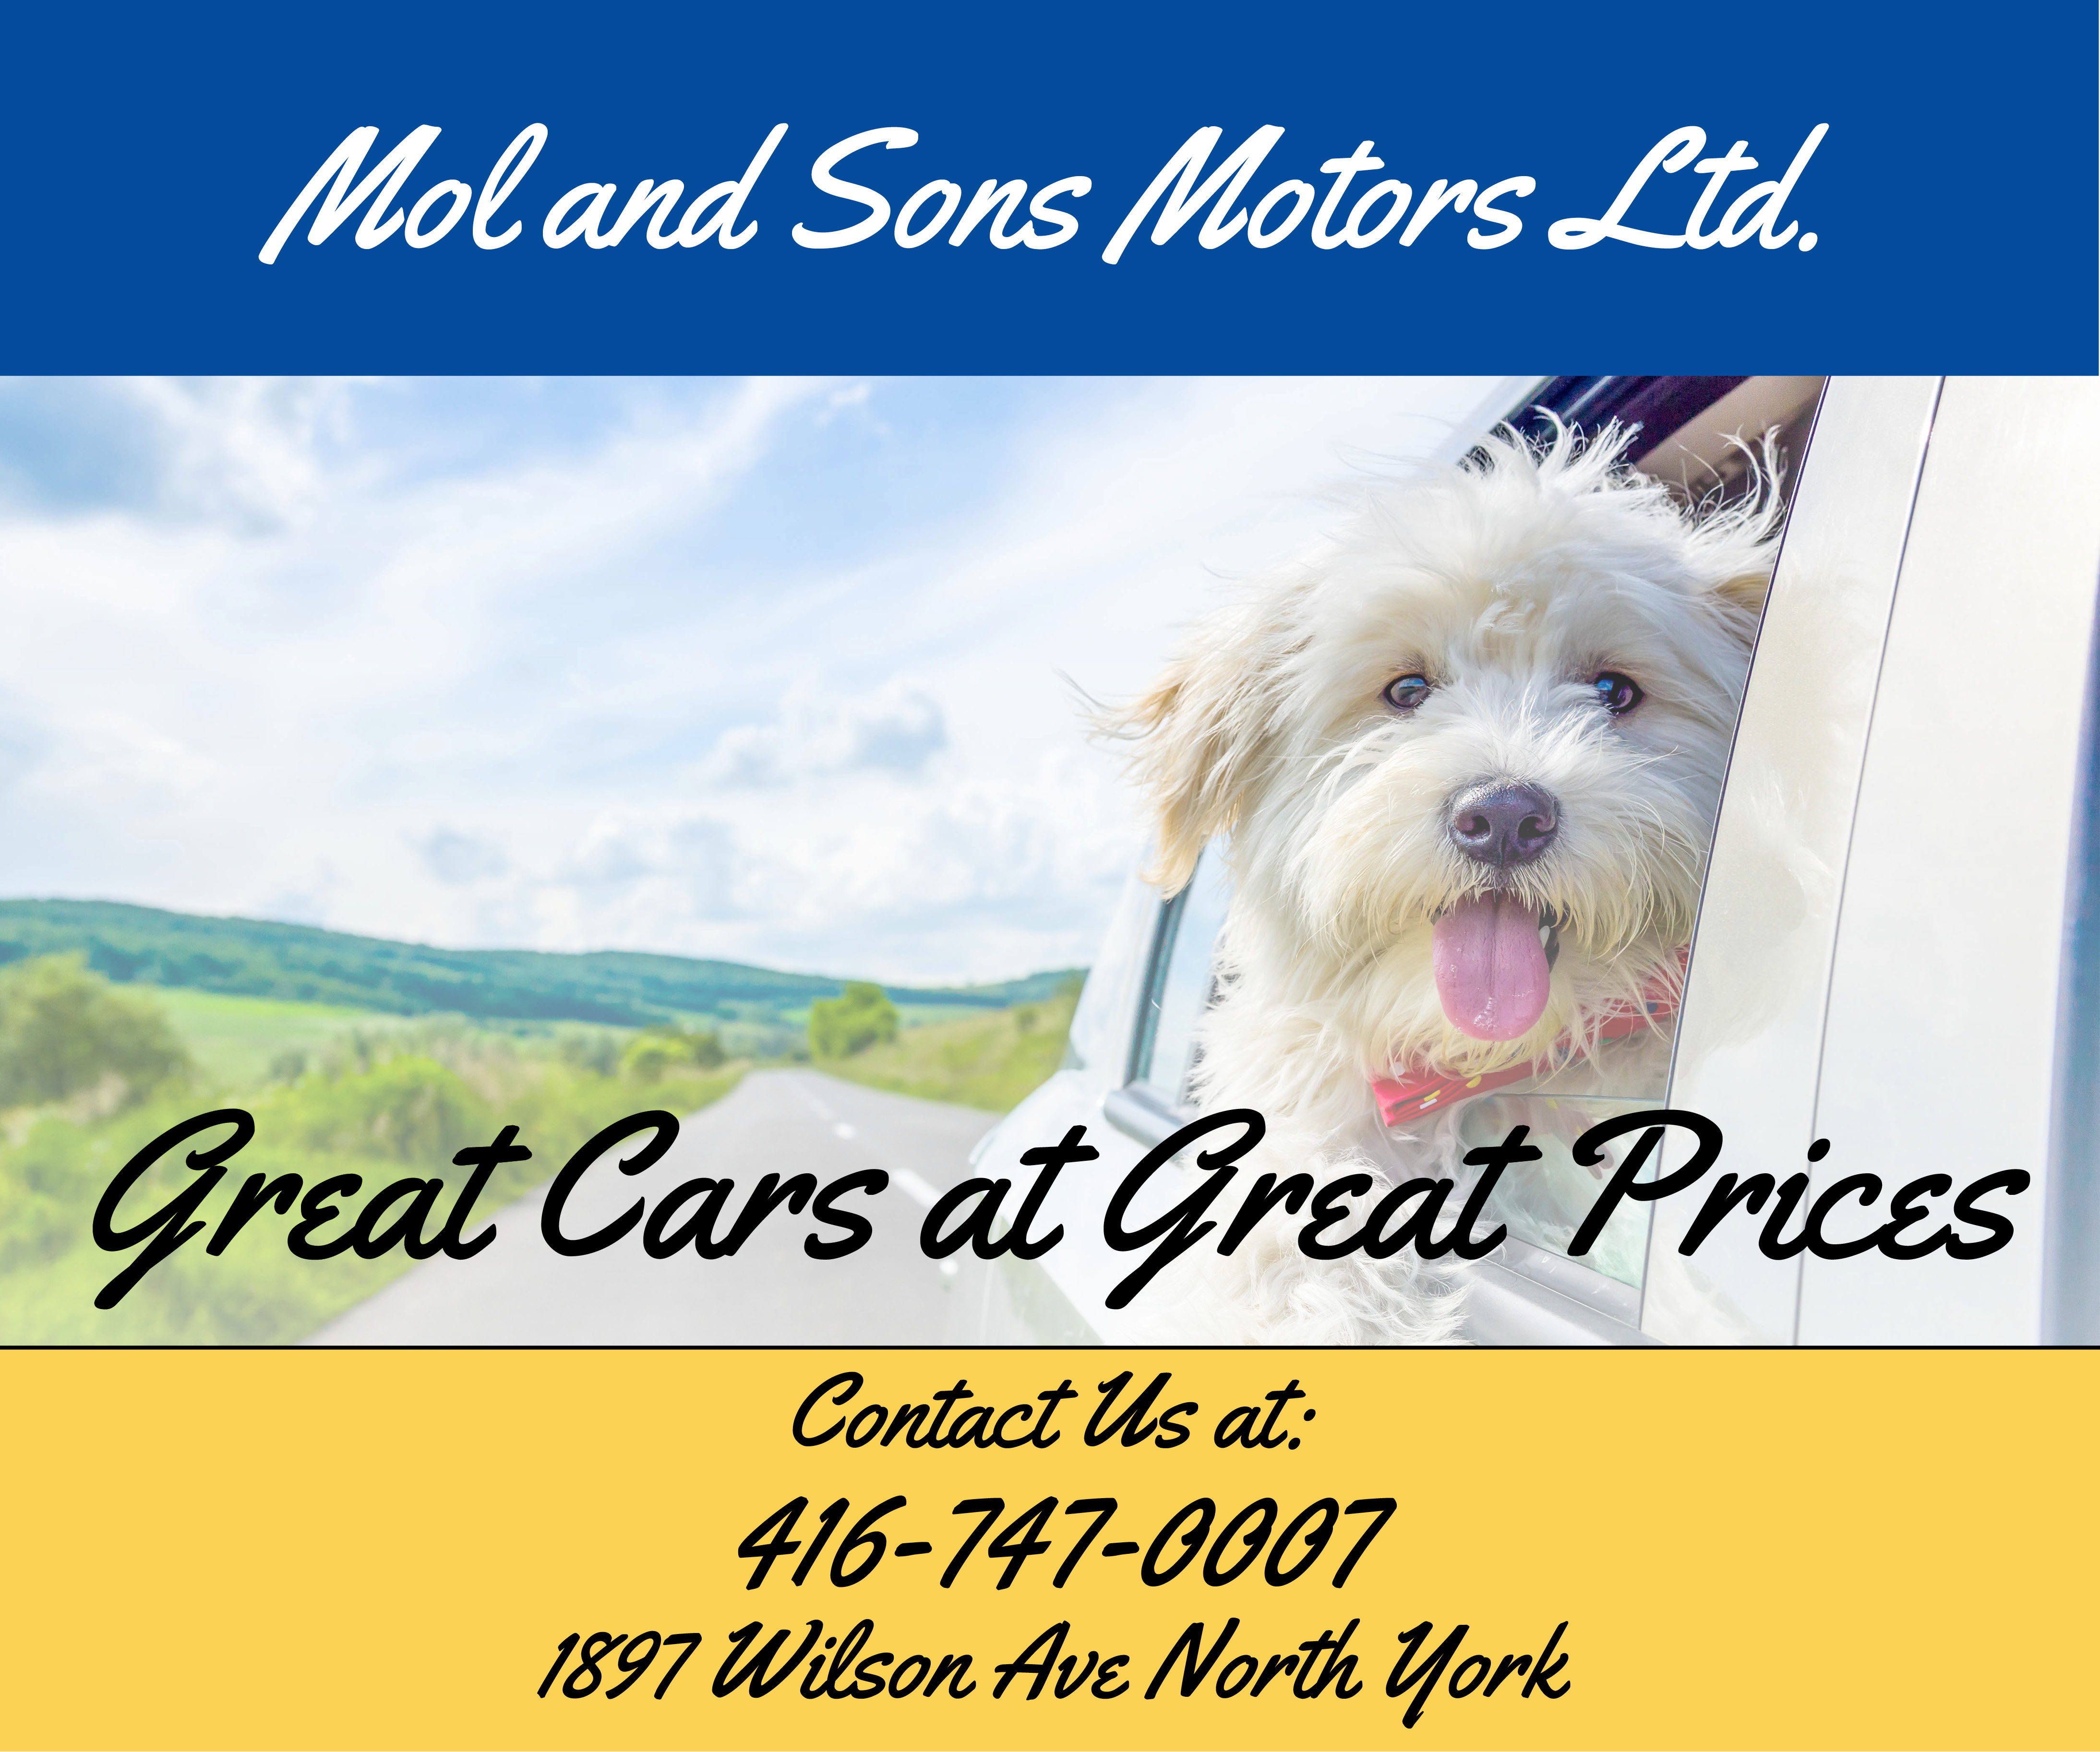 More from Mol and Sons Motors Ltd.